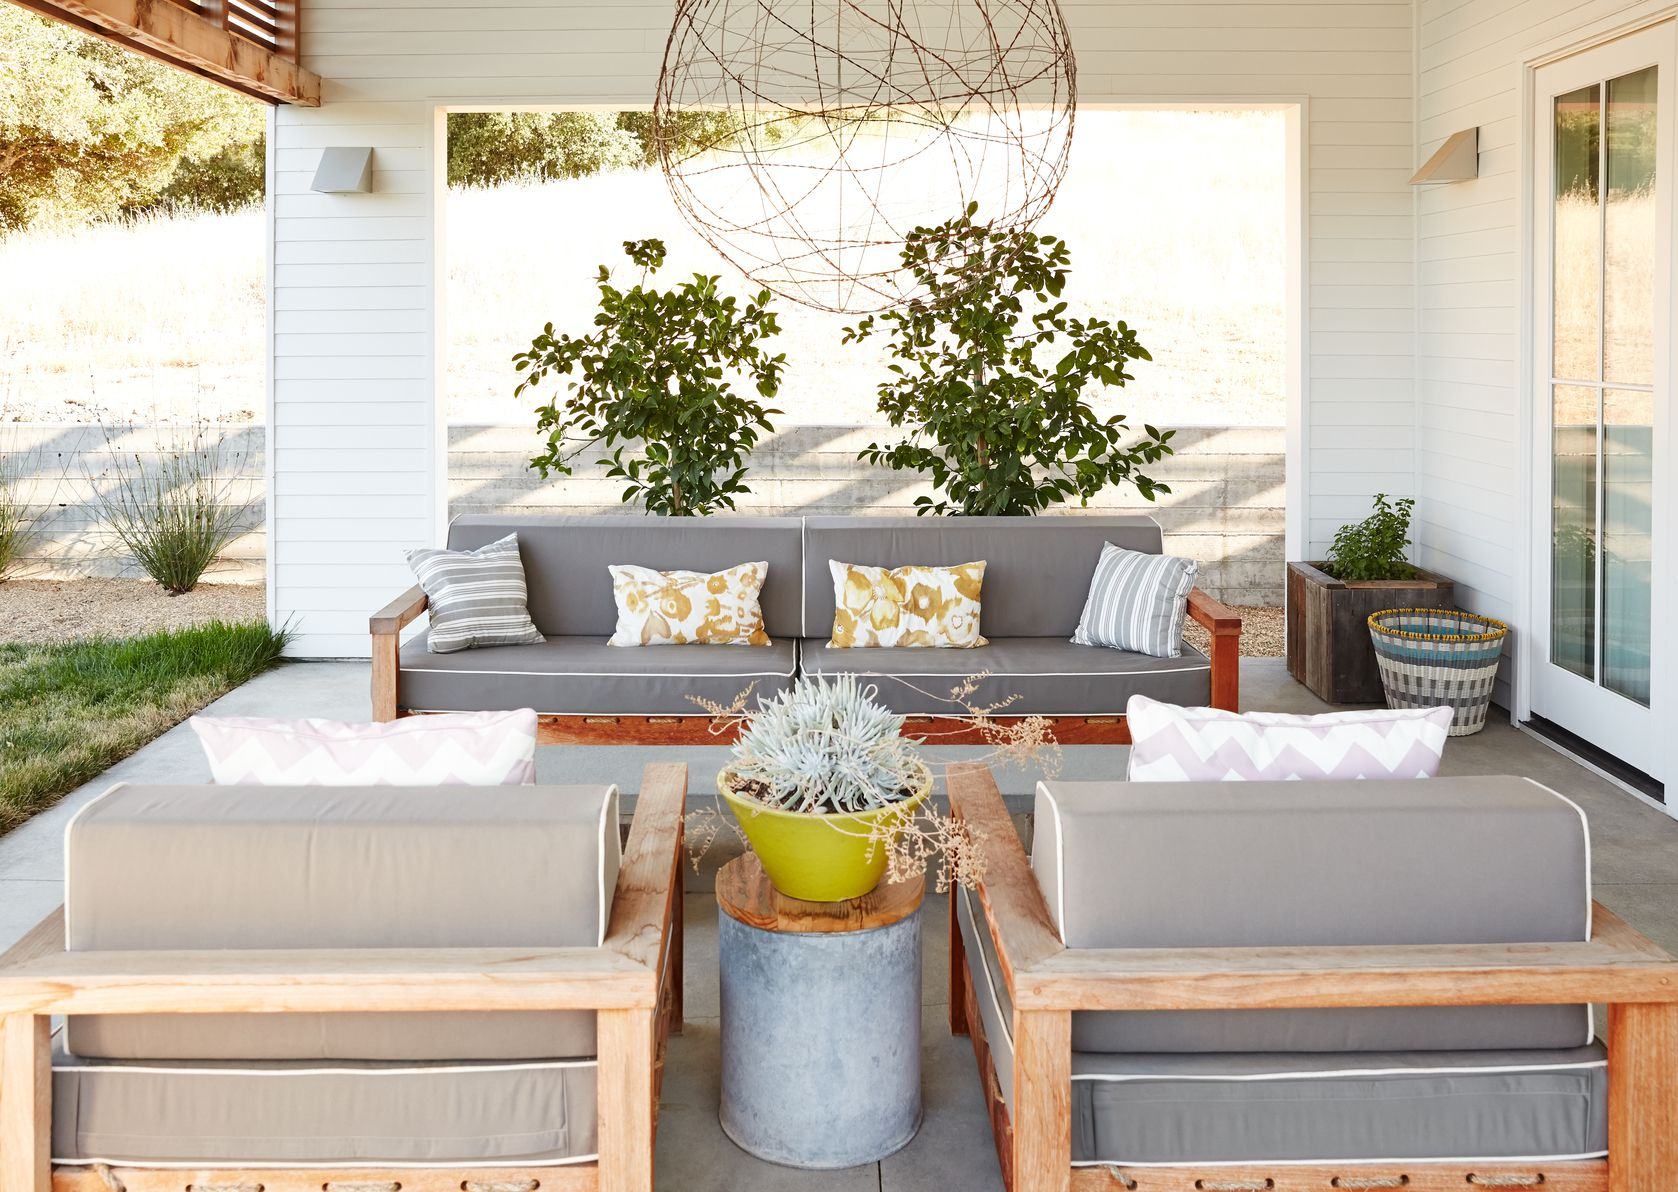 13 DIYs to Get Your Patio Ready for Summer